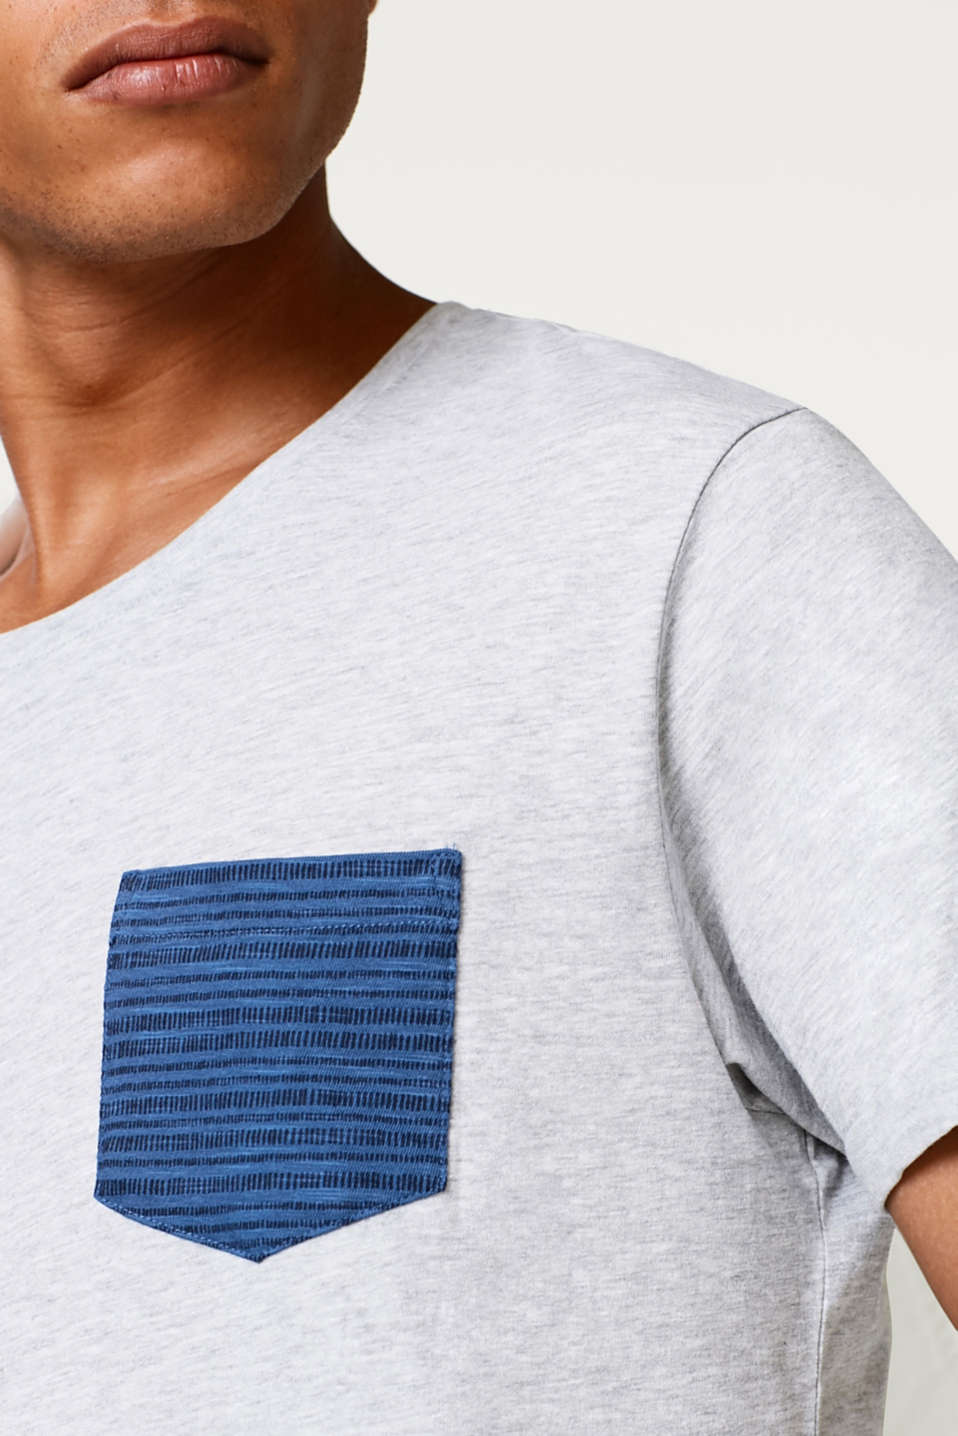 Jersey T-shirt with an accentuated breast pocket